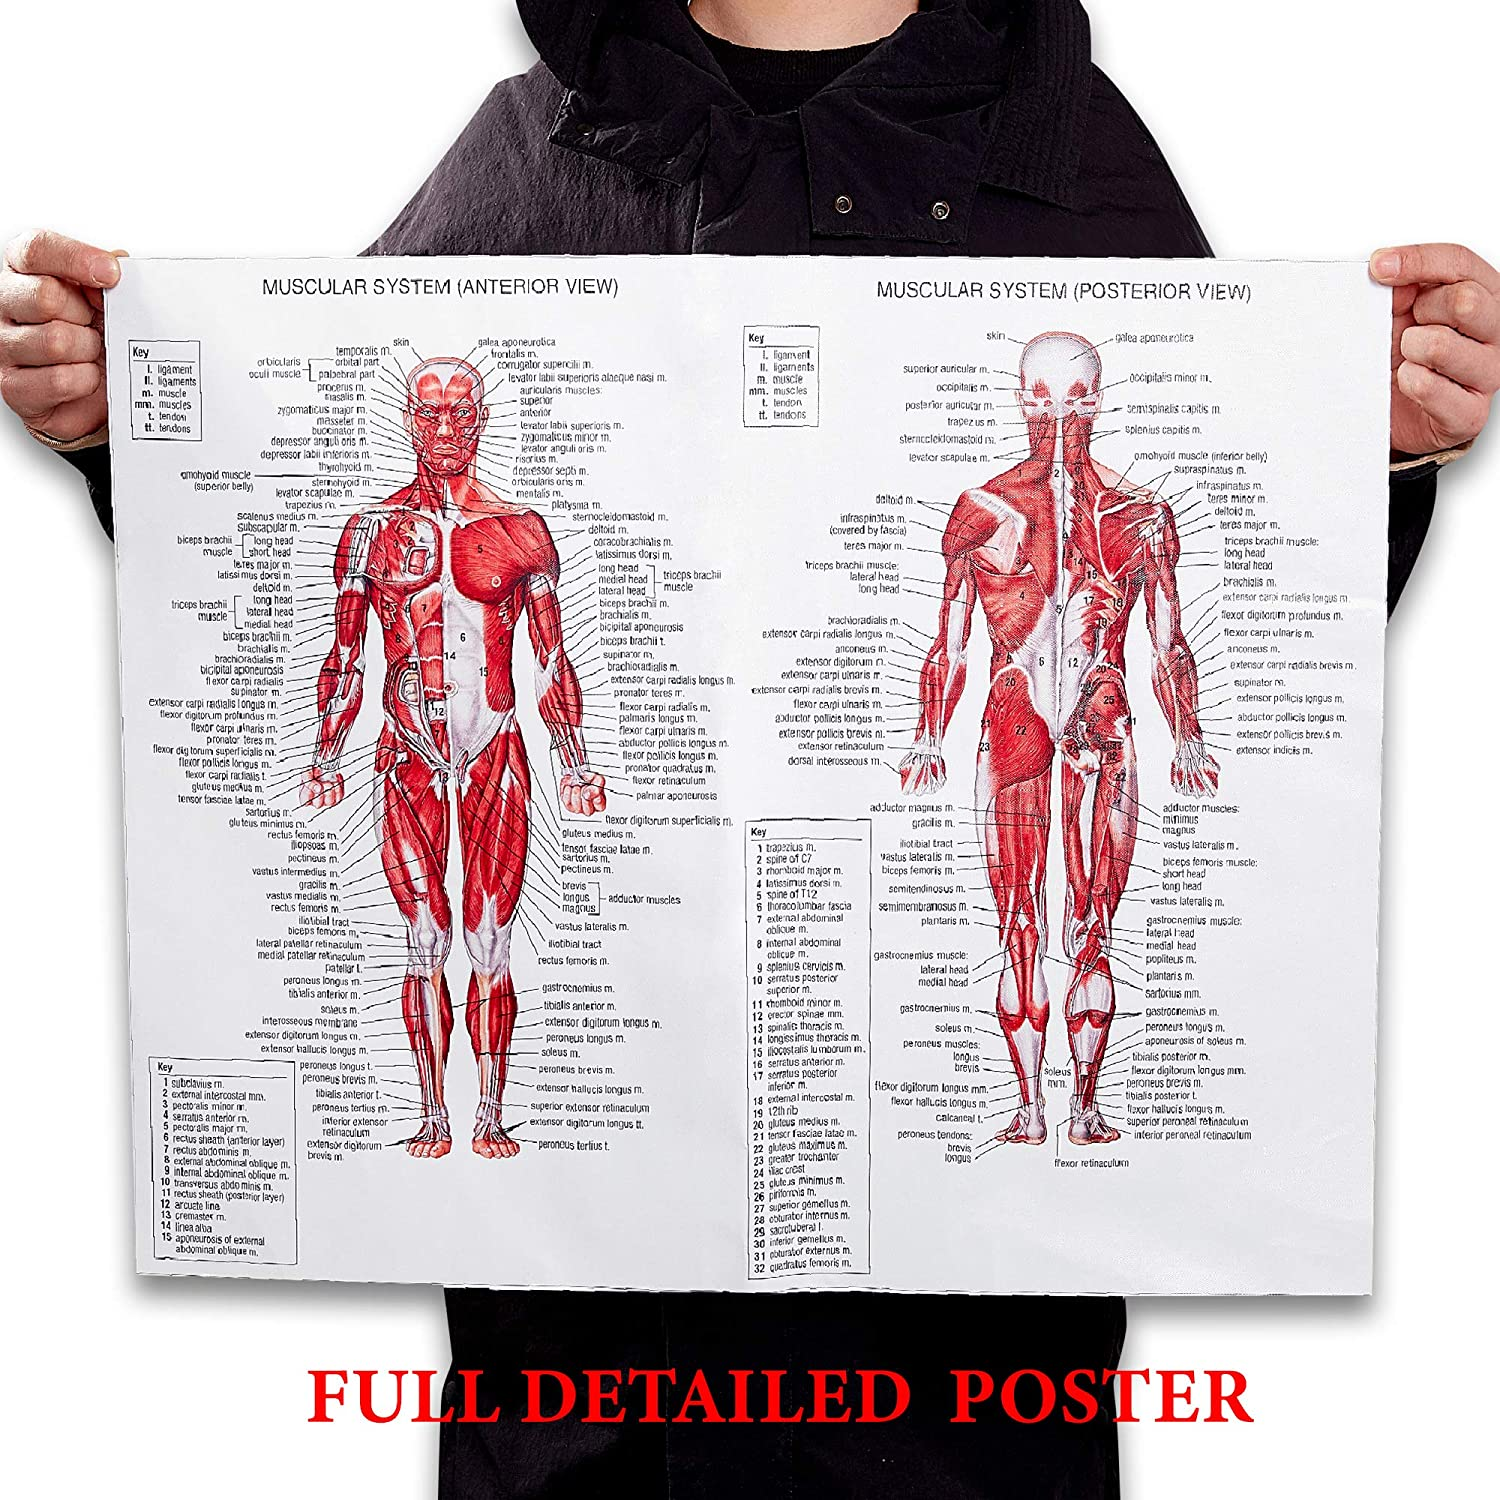 Tear Resistant Muscle Anatomy Chart BITOMIC Muscular System Anatomical Poster High quality canvas water proof Science Education Poster Poster Size 18 Width x 27 Height